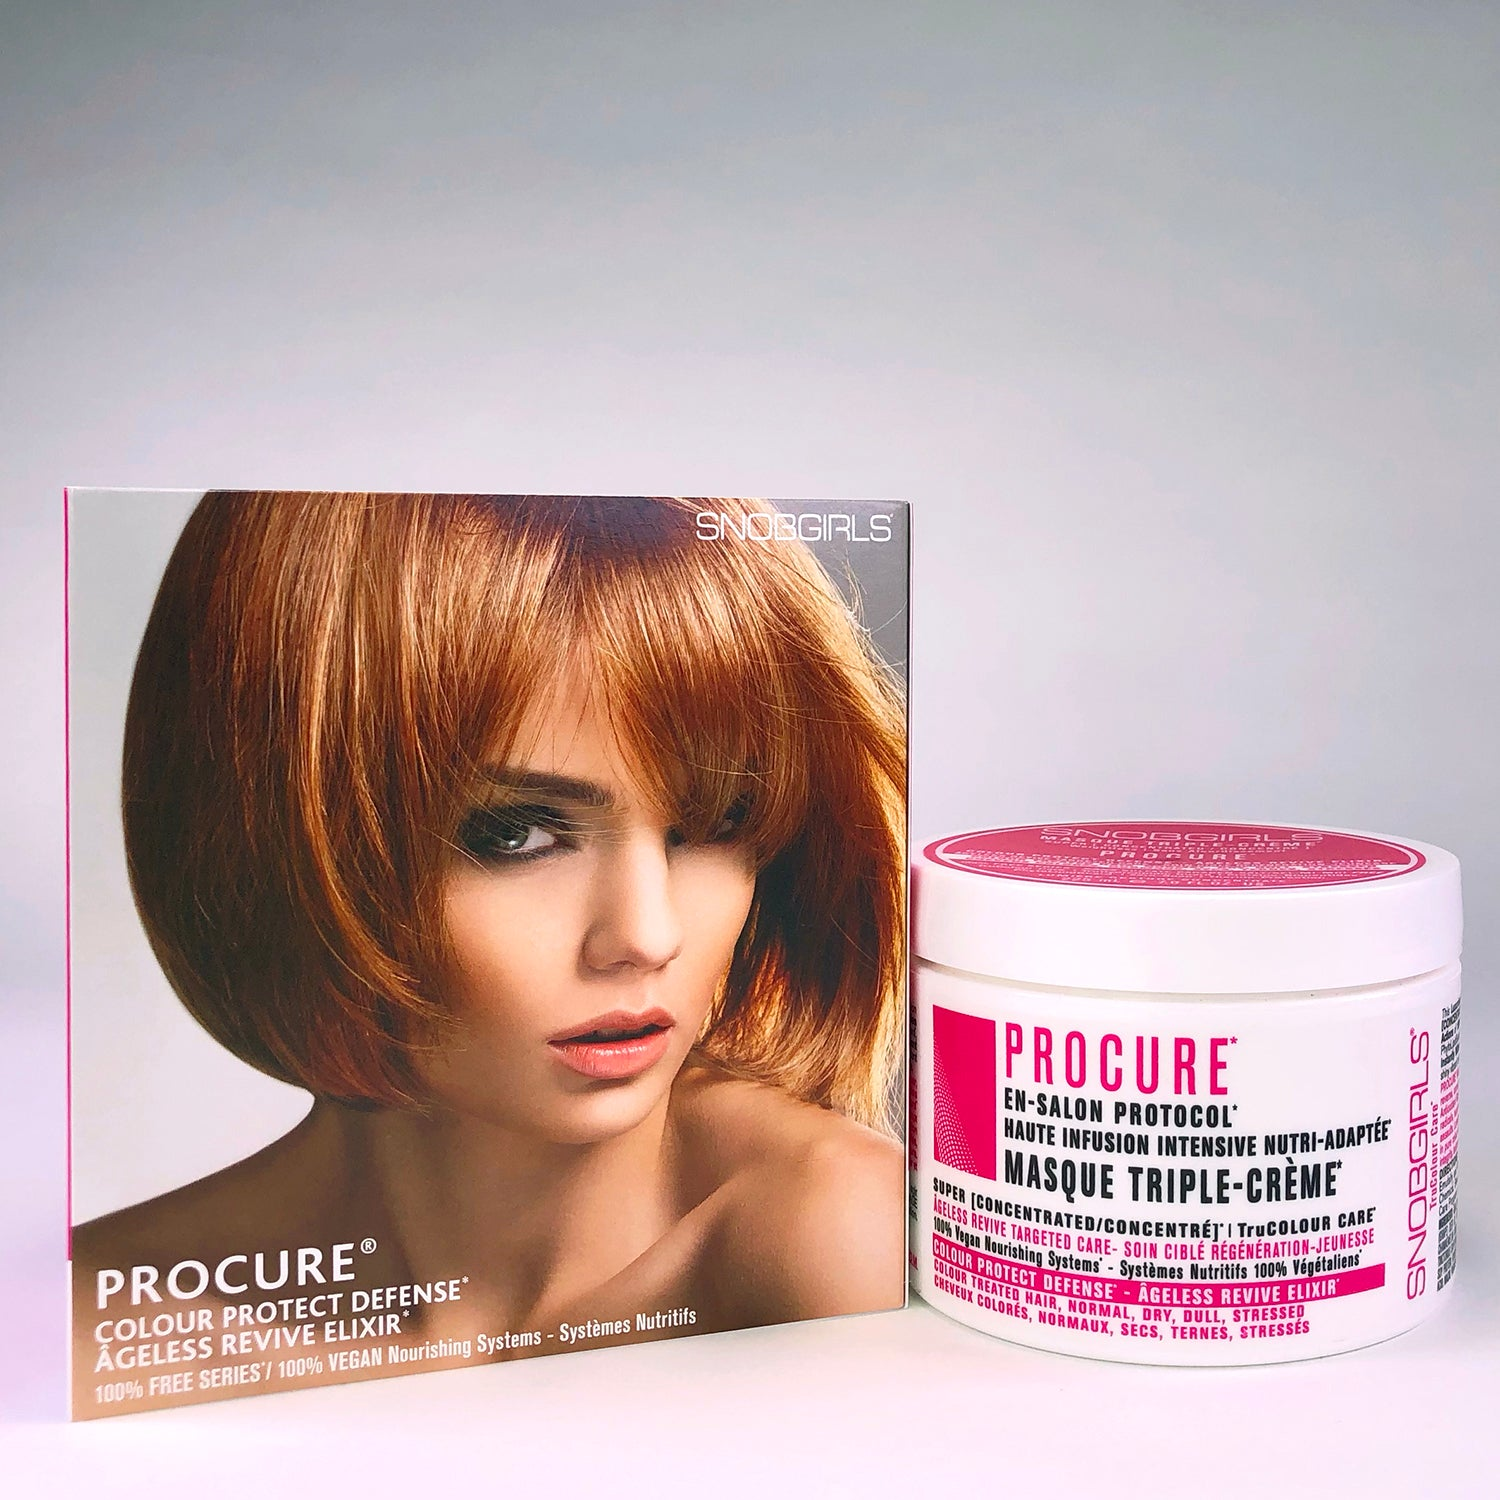 PROCURE Colour Protect Defense Triple-Creme Masque - SNOBGIRLS.com